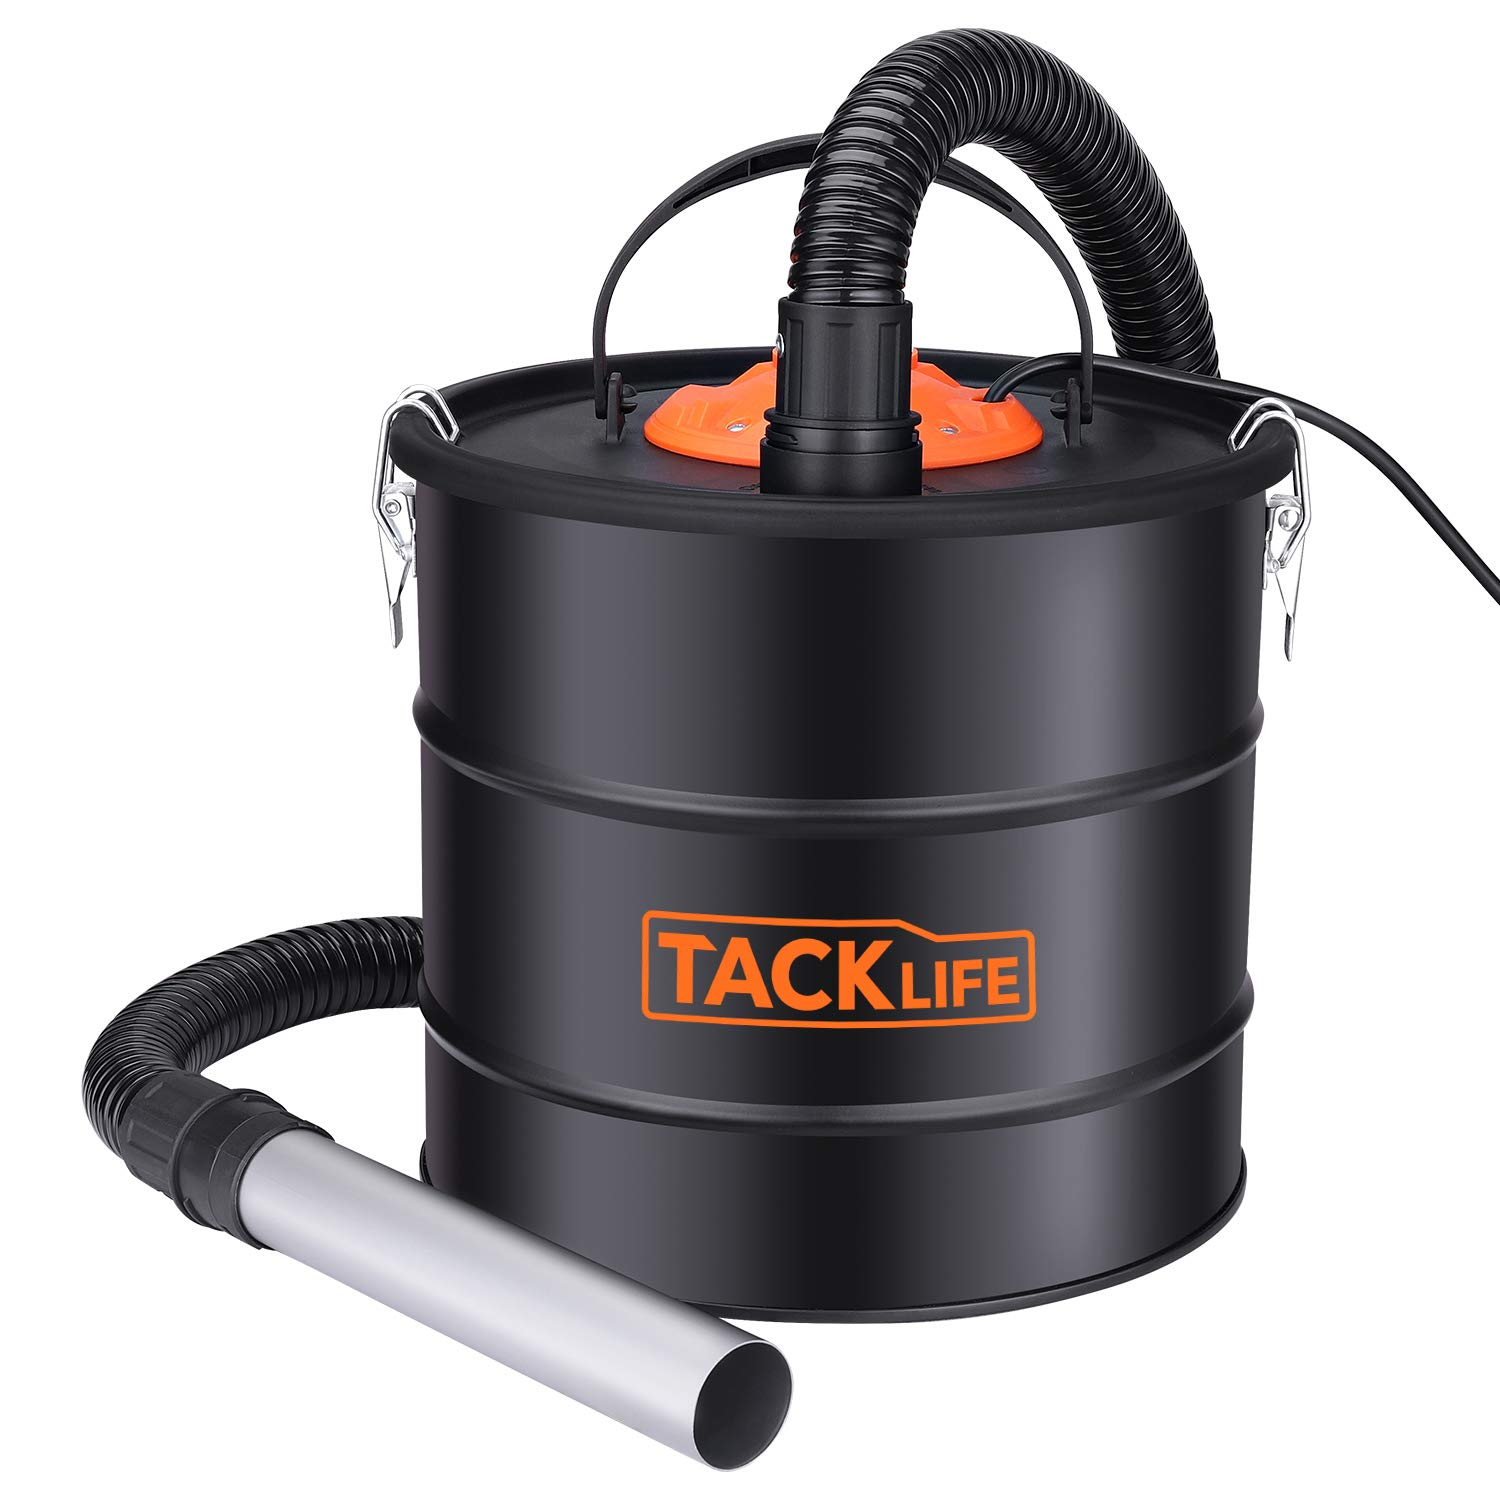 Ash Vacuum, TACKLIFE 800W Ash Vacuum Cleaner Ash VAC Canister 5 Gallon Capacity Bagless Debris/Dust/Ash Collector, Suitable for Fire, Log Burners, Stoves-PVC03A by TACKLIFE (Image #1)